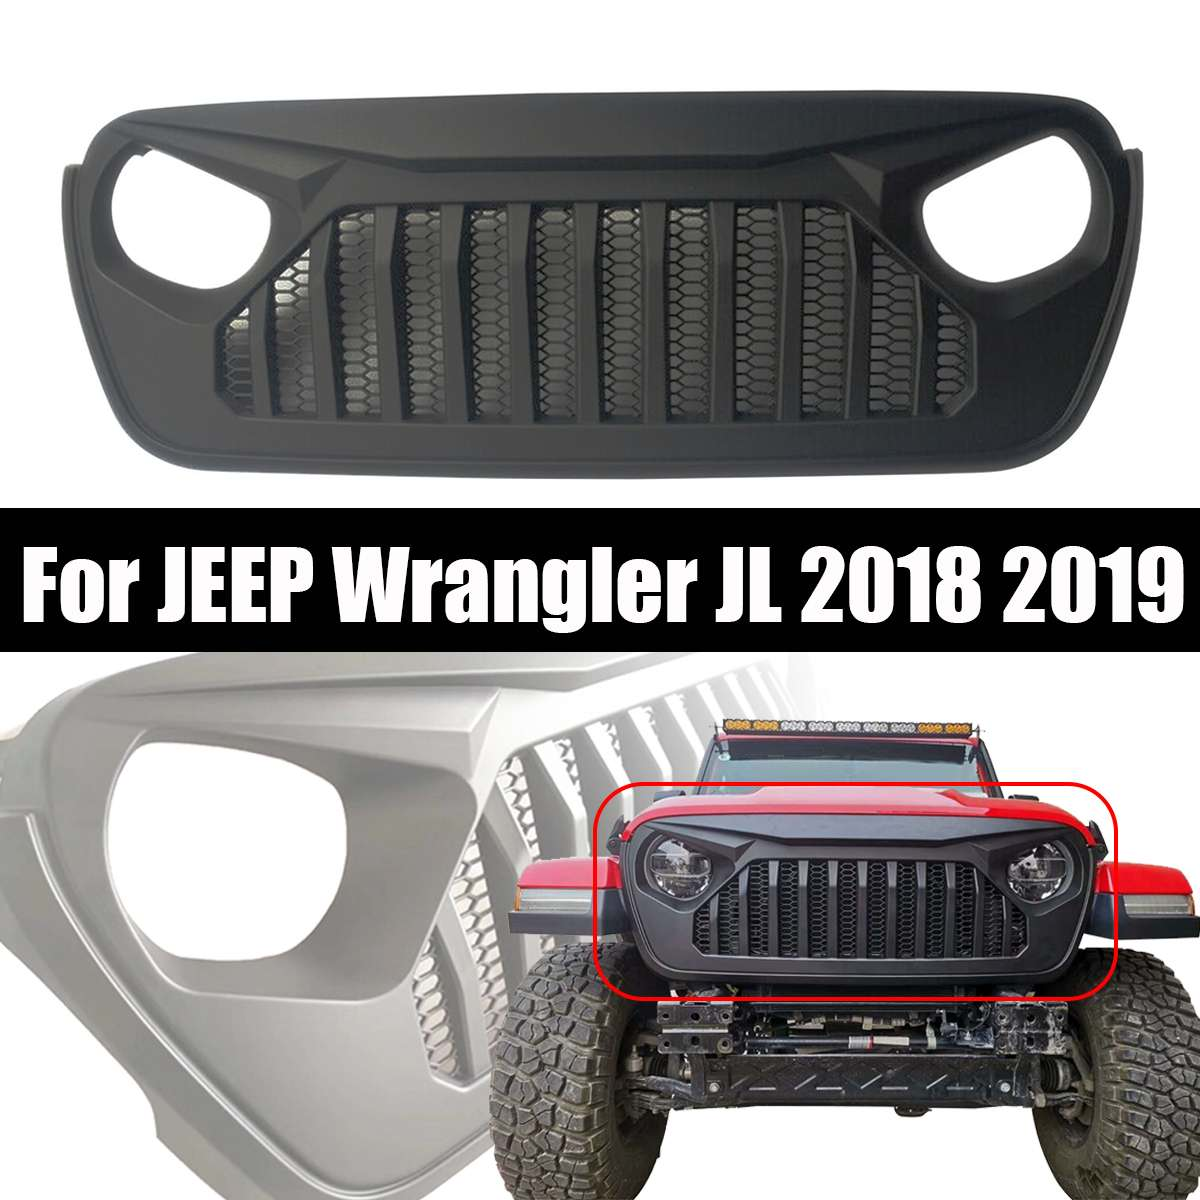 Racing Grille for Jeep for Wrangler JL 2018+ Car Front Grilles Cover Decoration for Jeep for Wrangler JL Car Accessories StylingRacing Grille for Jeep for Wrangler JL 2018+ Car Front Grilles Cover Decoration for Jeep for Wrangler JL Car Accessories Styling